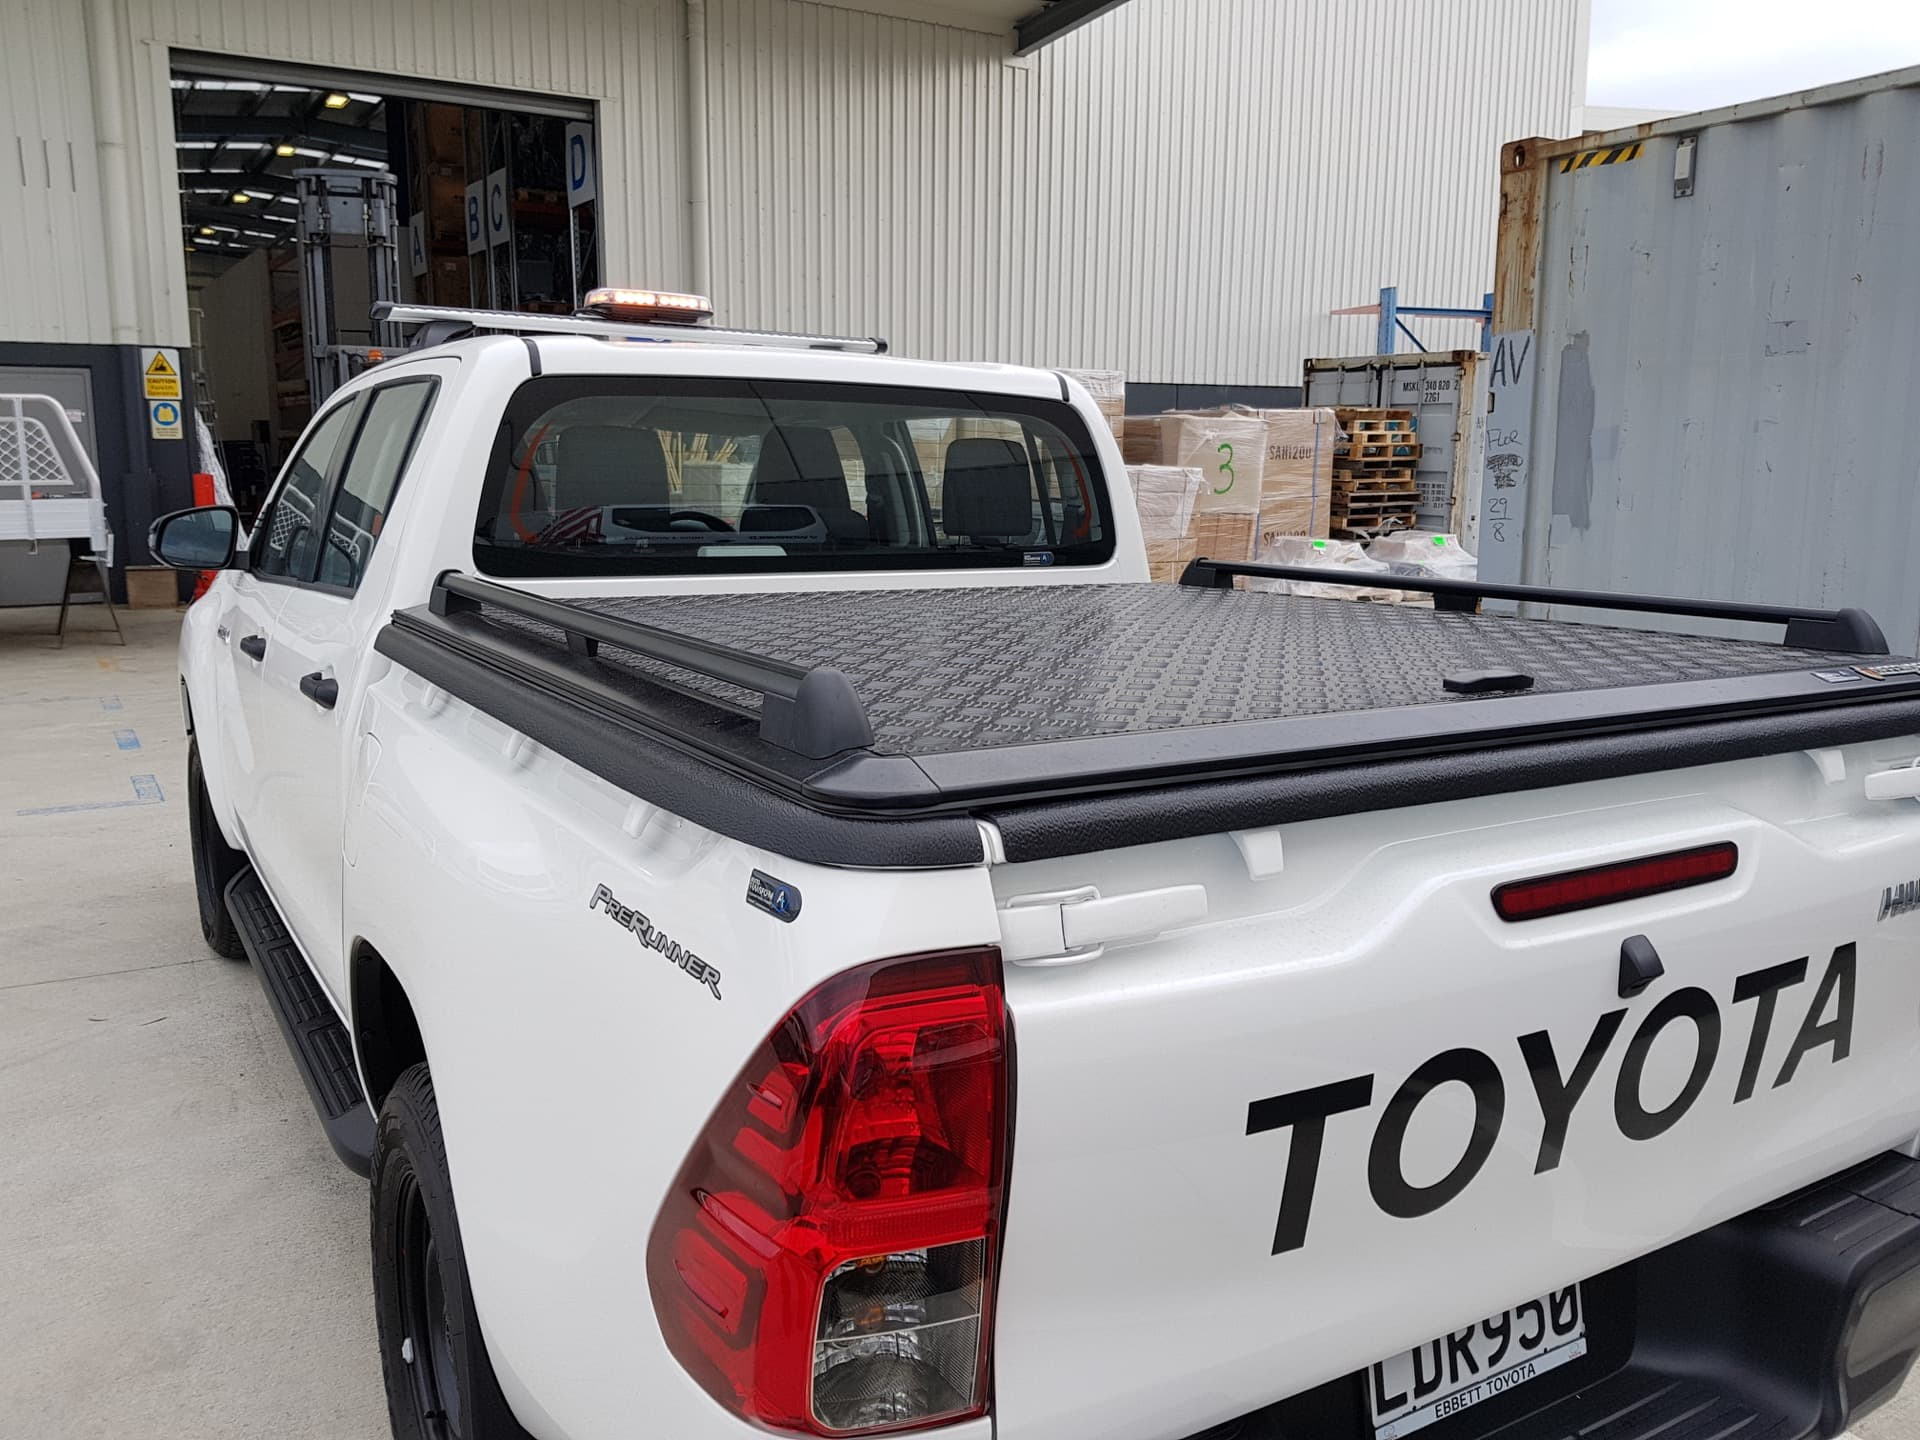 Ute lid for Toyota Hilux Ute